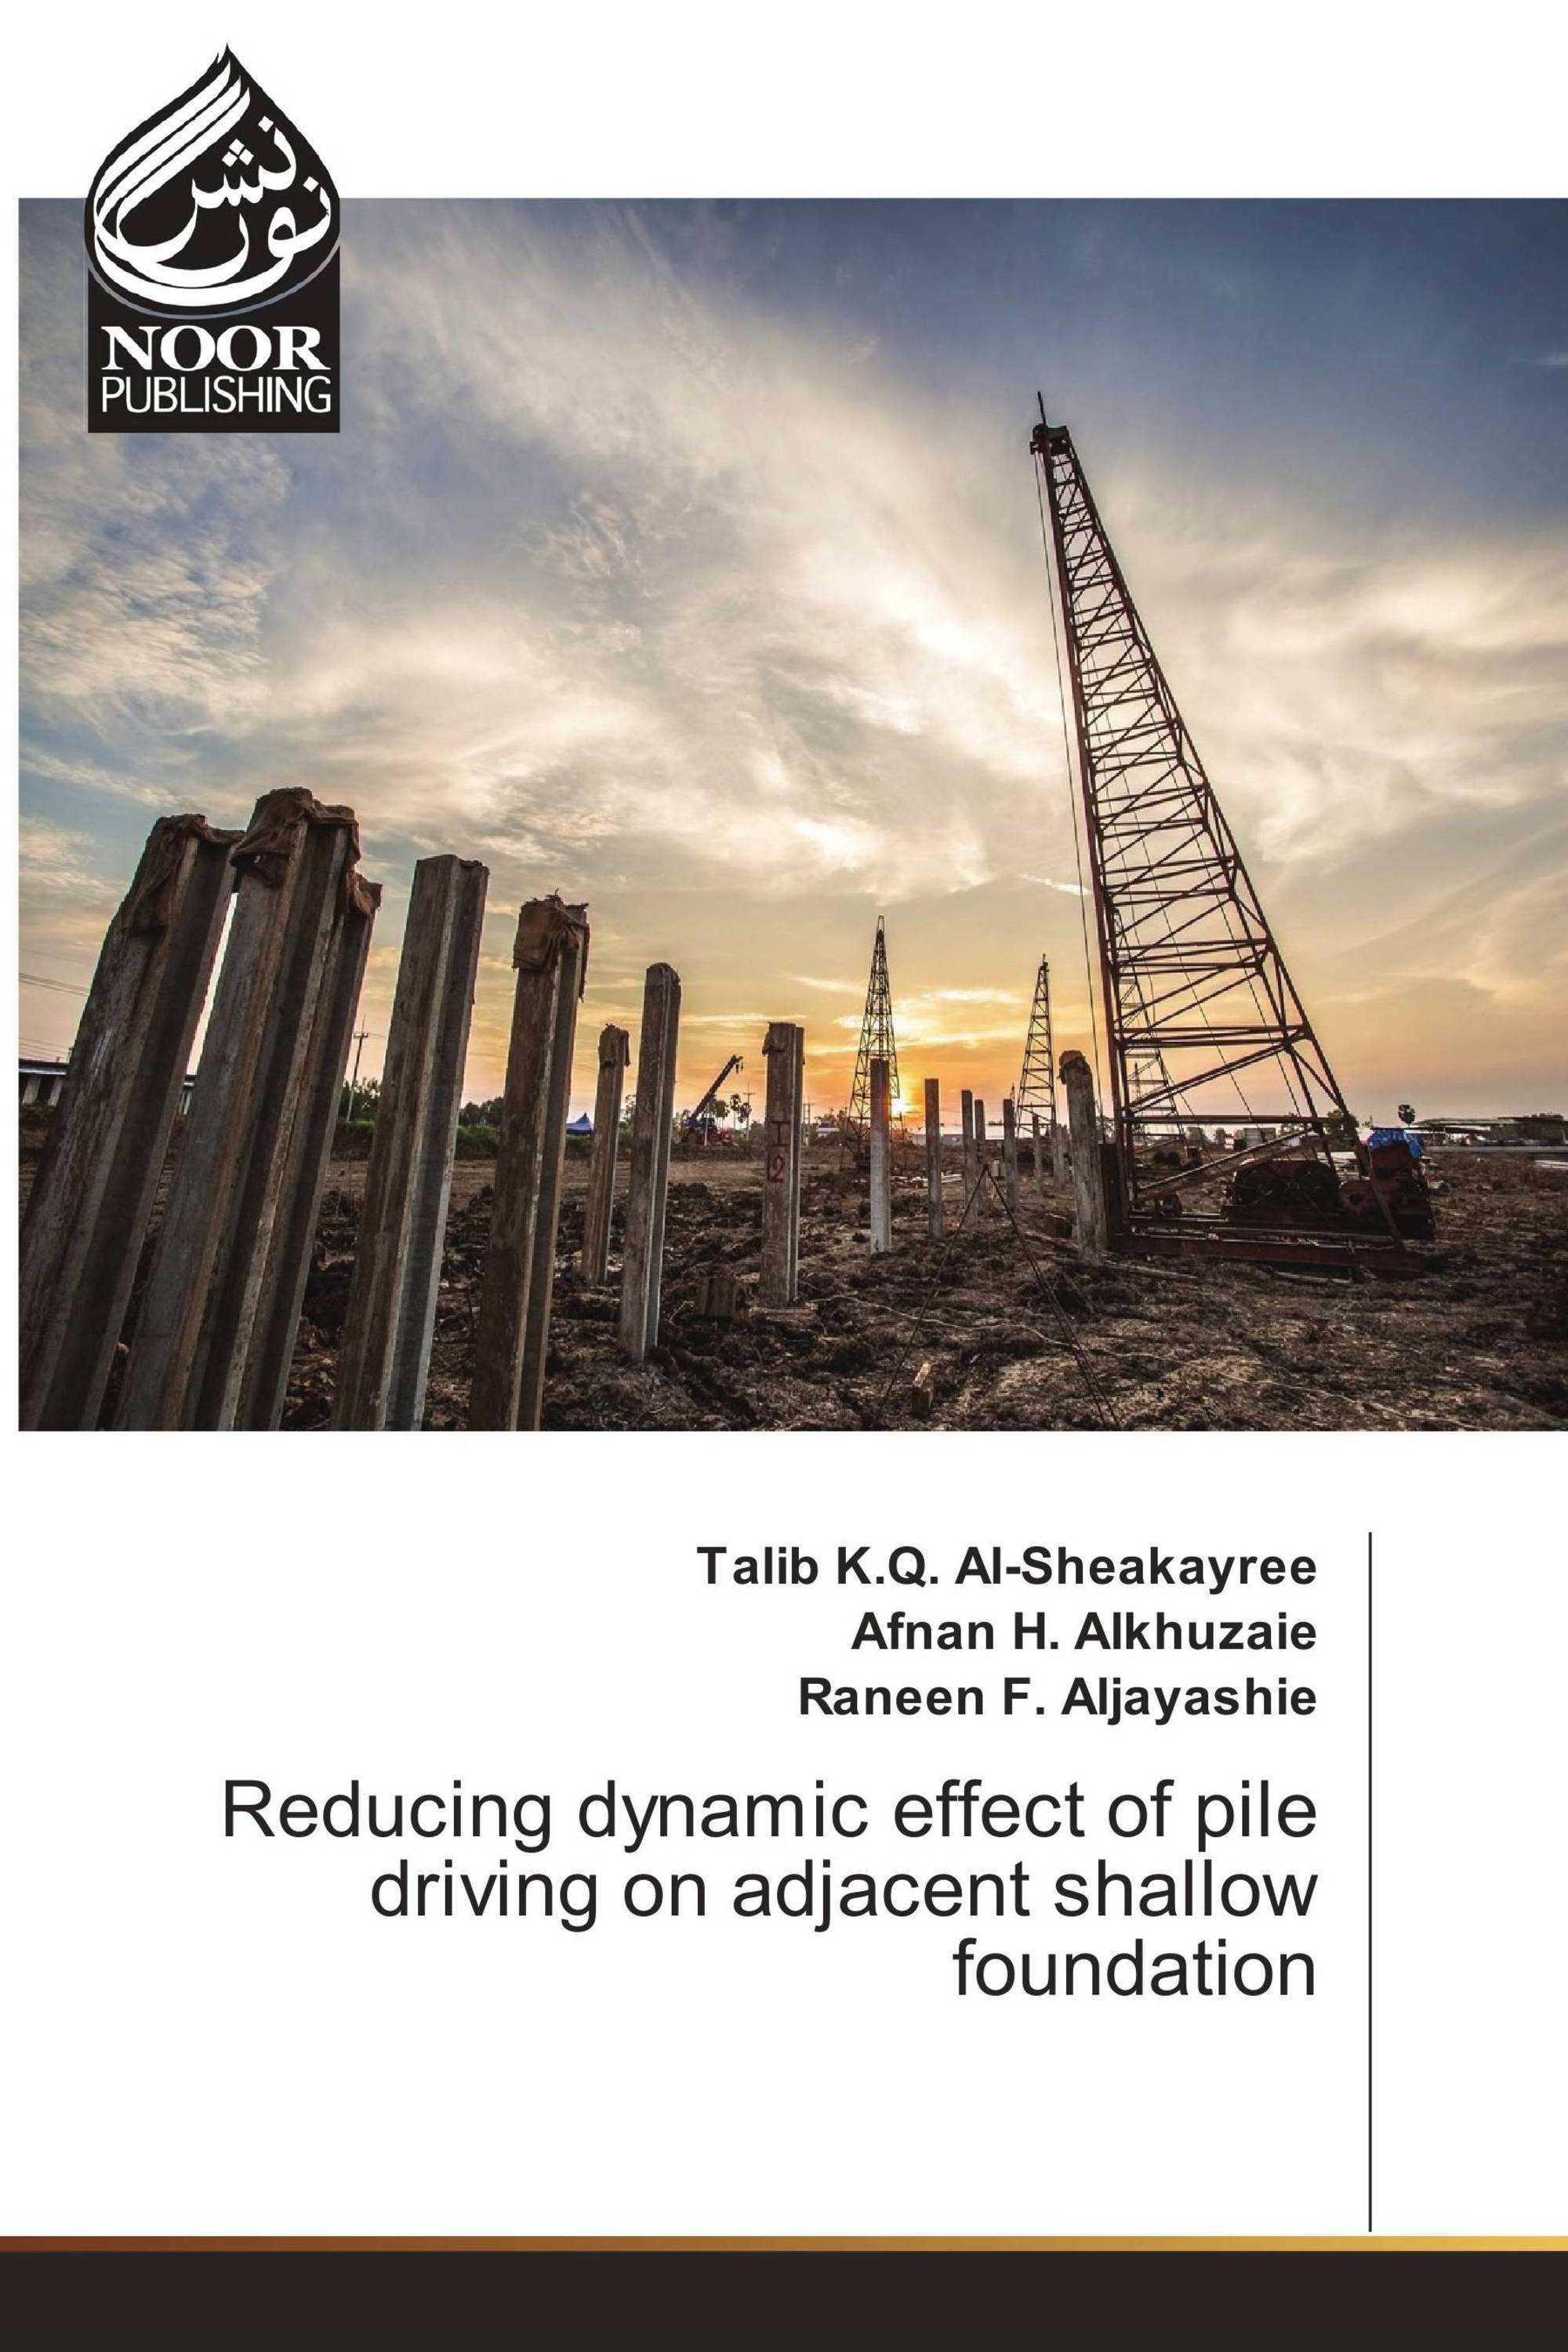 Reducing dynamic effect of pile driving on adjacent shallow